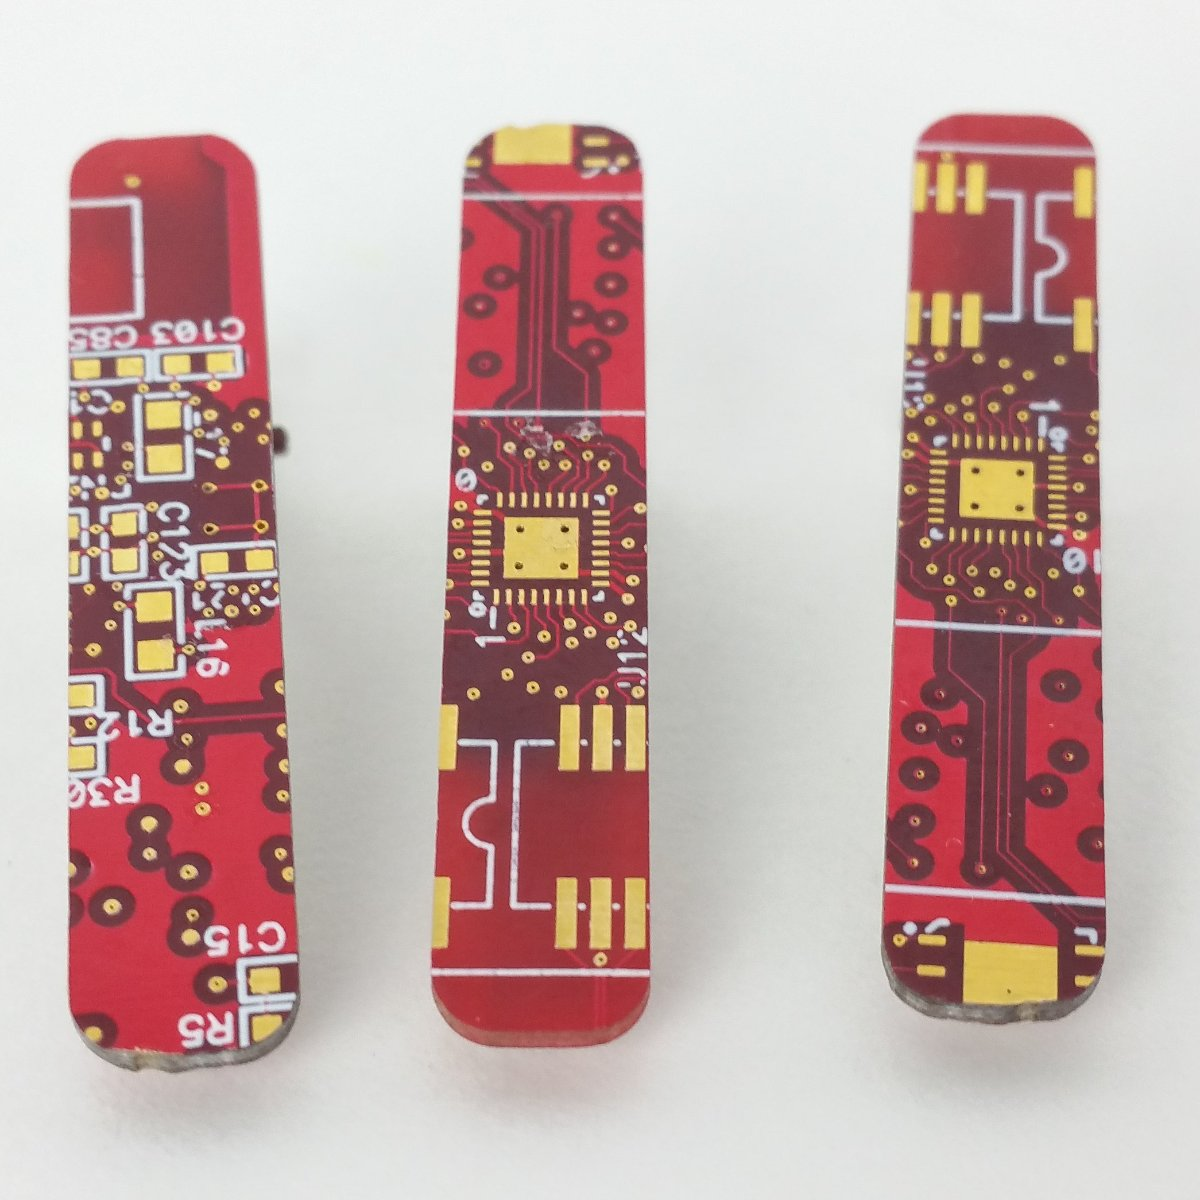 Techwearsred And Gold Circuit Board Tie Clip Recycling Technology Cell Phone Red Real 100 Recycled